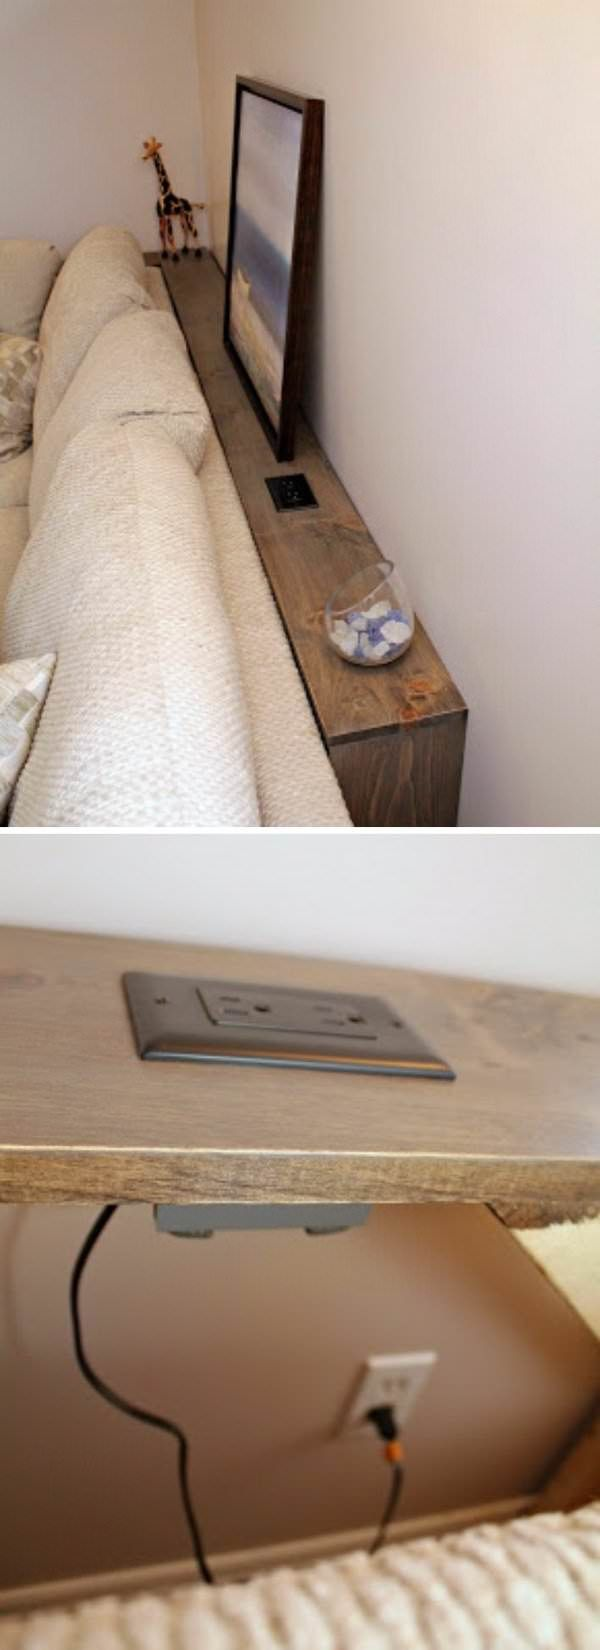 That Small E Left Behind Your Sofa Can Be So Functional Cozy Contemporary Decor Pinterest Living Room Home And